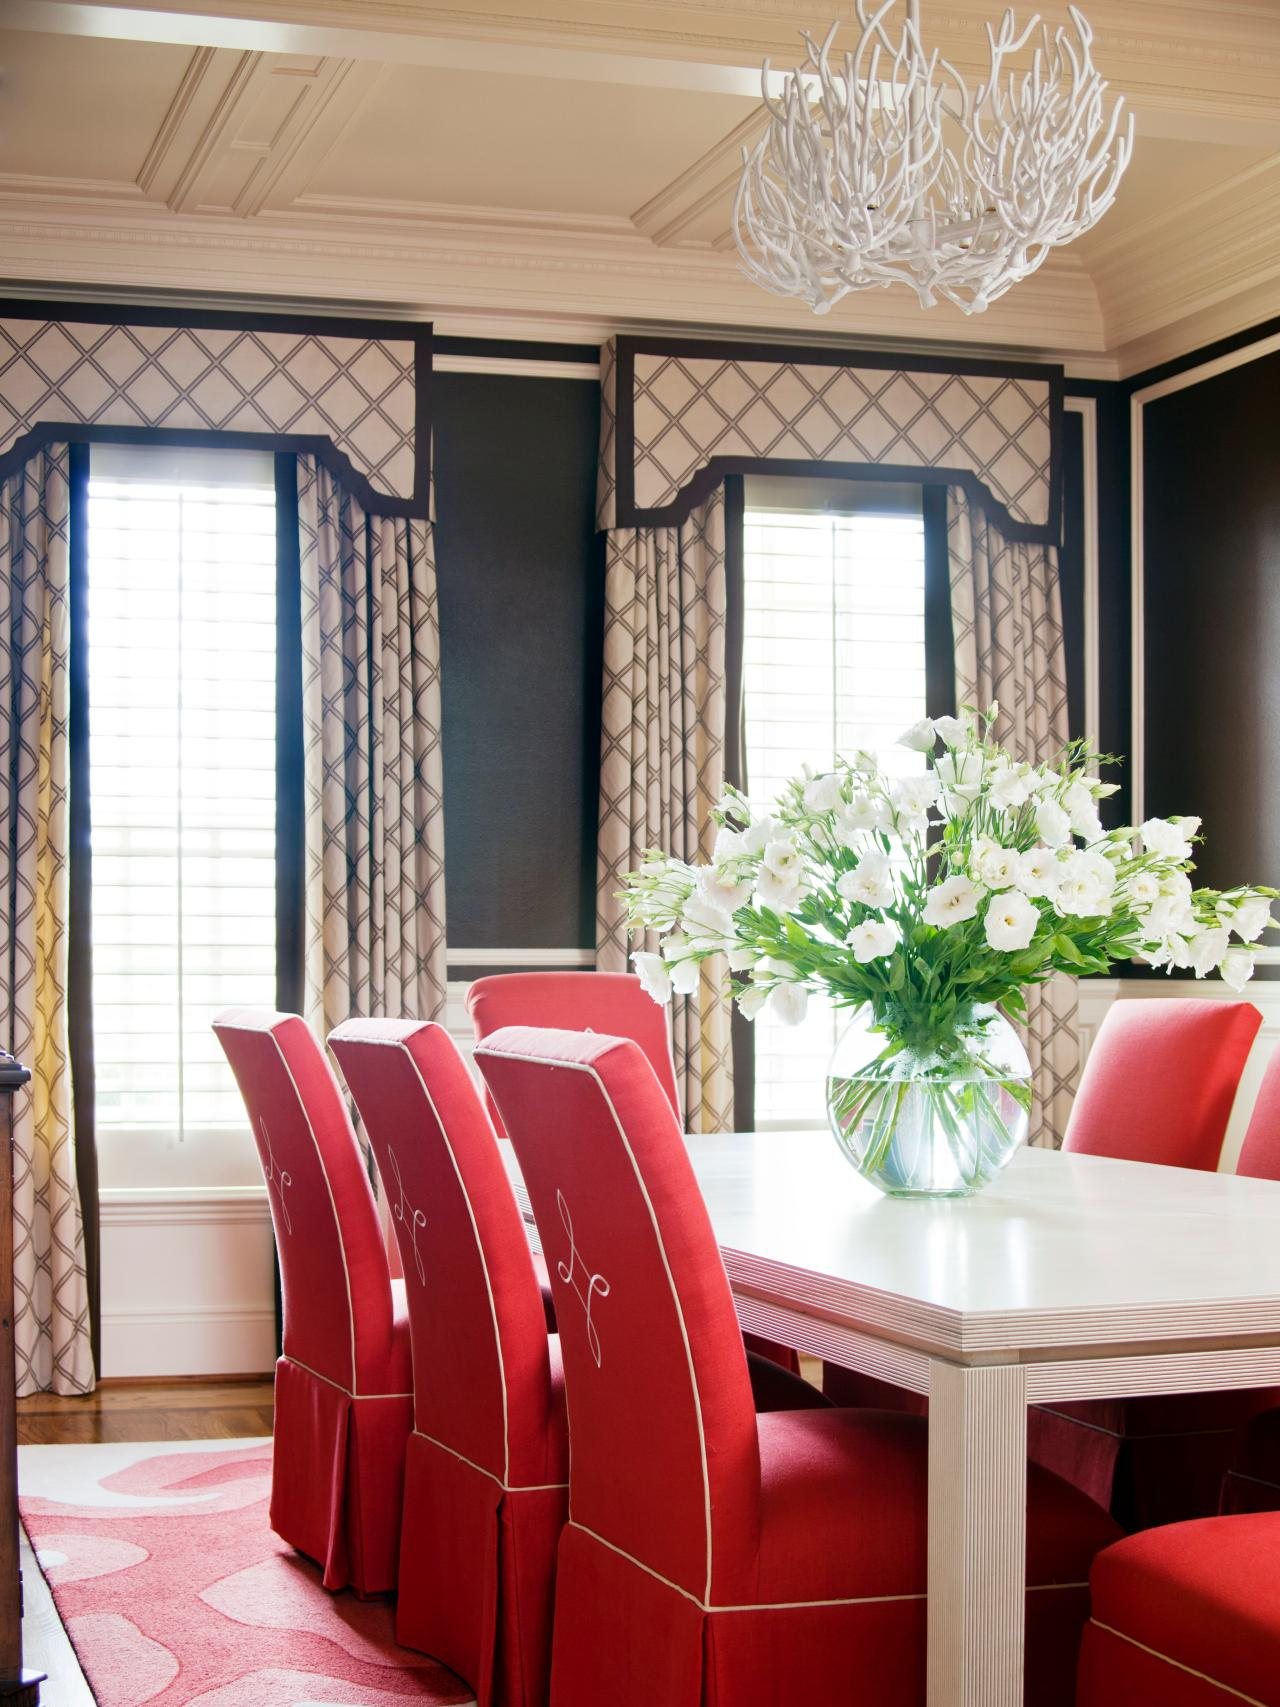 The best window treatments for your style the shade company Drapery treatments ideas